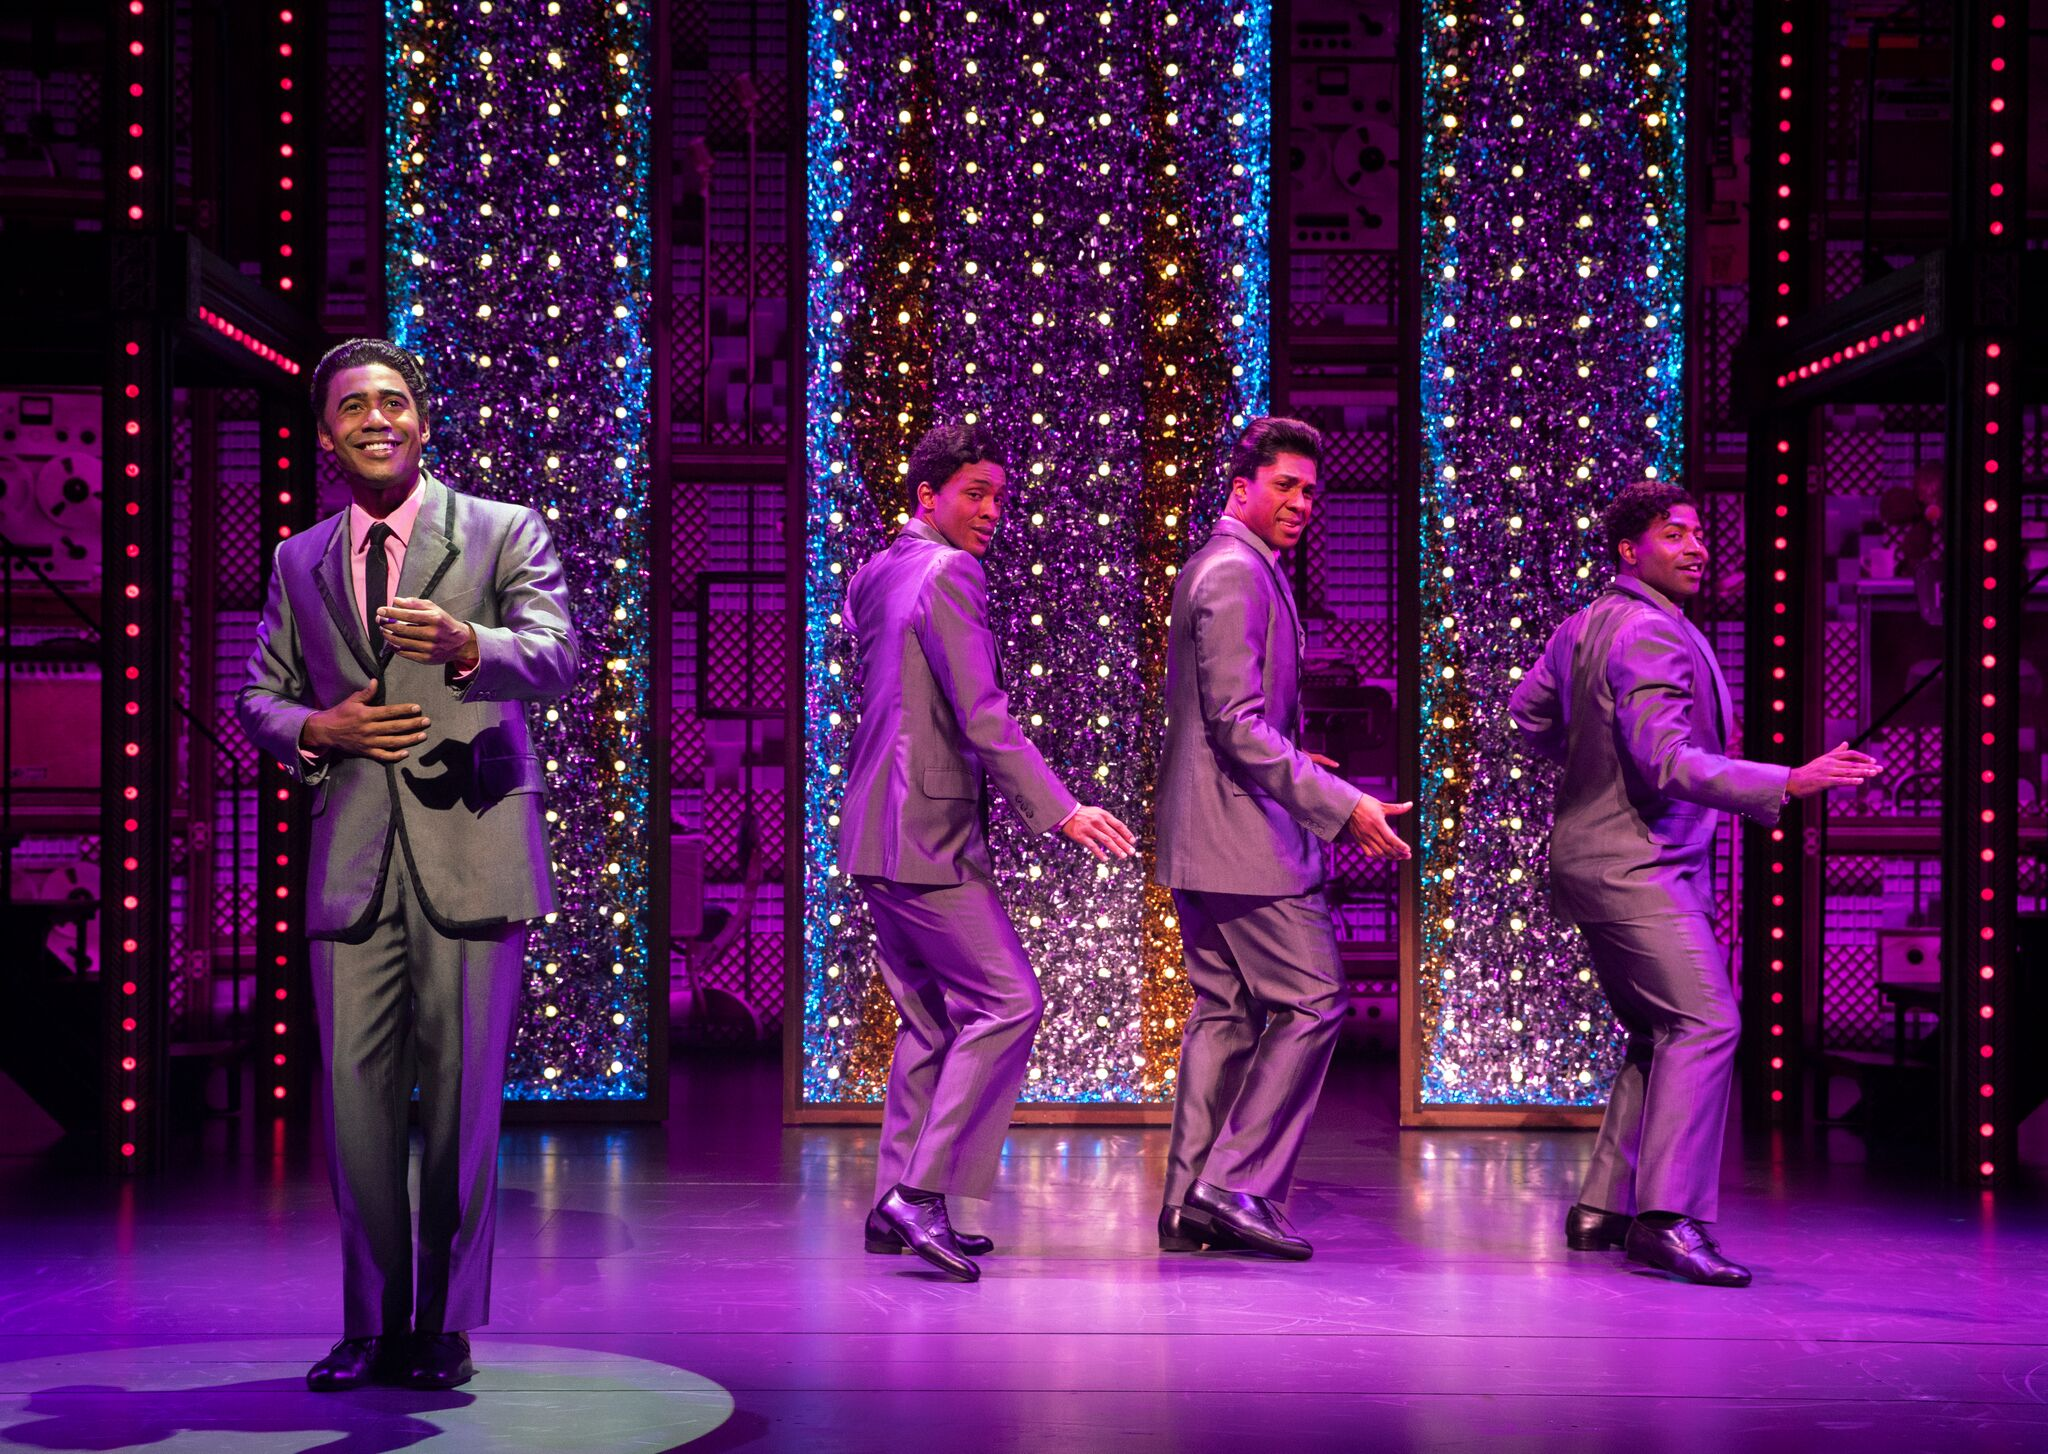 """The Drifters"" played by (from left to right) Dimitri Joseph Moïse, Deon Releford-Lee, Nathan Andrew Riley and Michael Stiggers (no longer with the show). Photo credit: Joan Marcus"